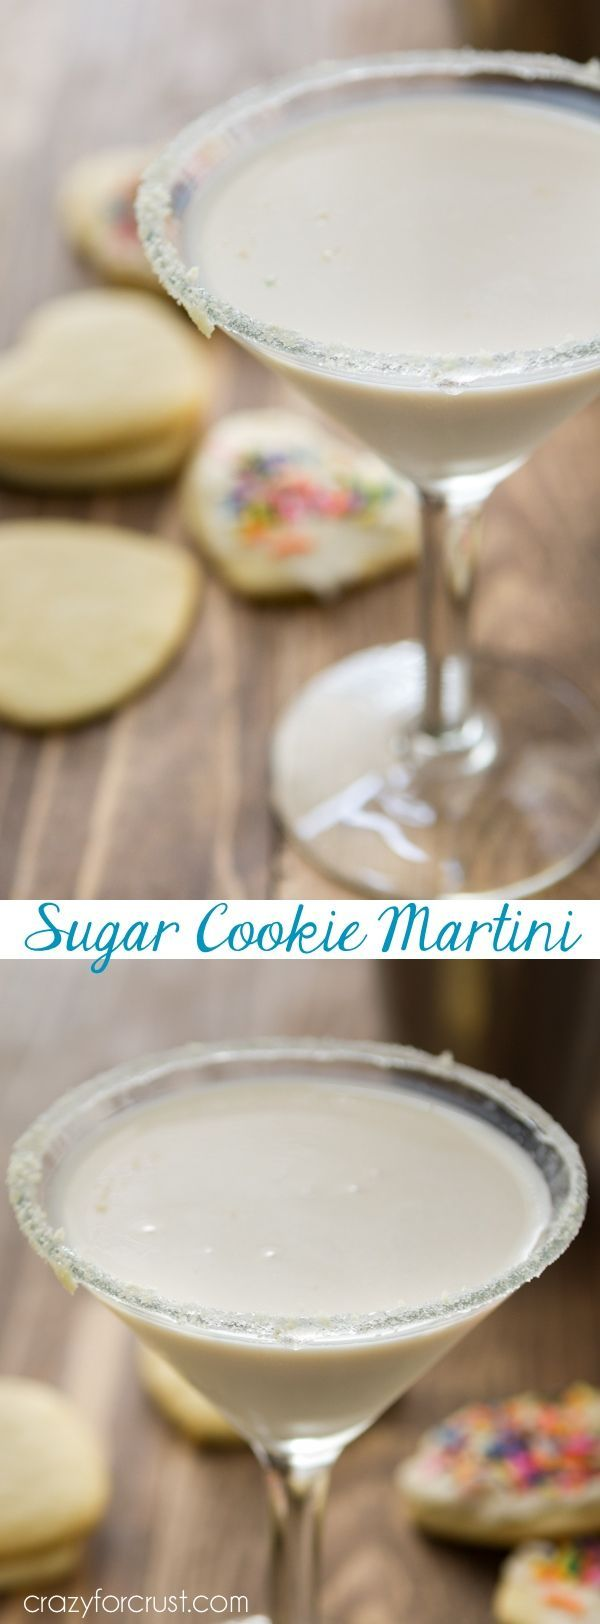 This Sugar Cookie Martini is the perfect signature dessert cocktail for any party. Only 3 ingredients and it tastes like a sugar cookie! -Made this but used snickerdoodle creamer because it was all I could find.